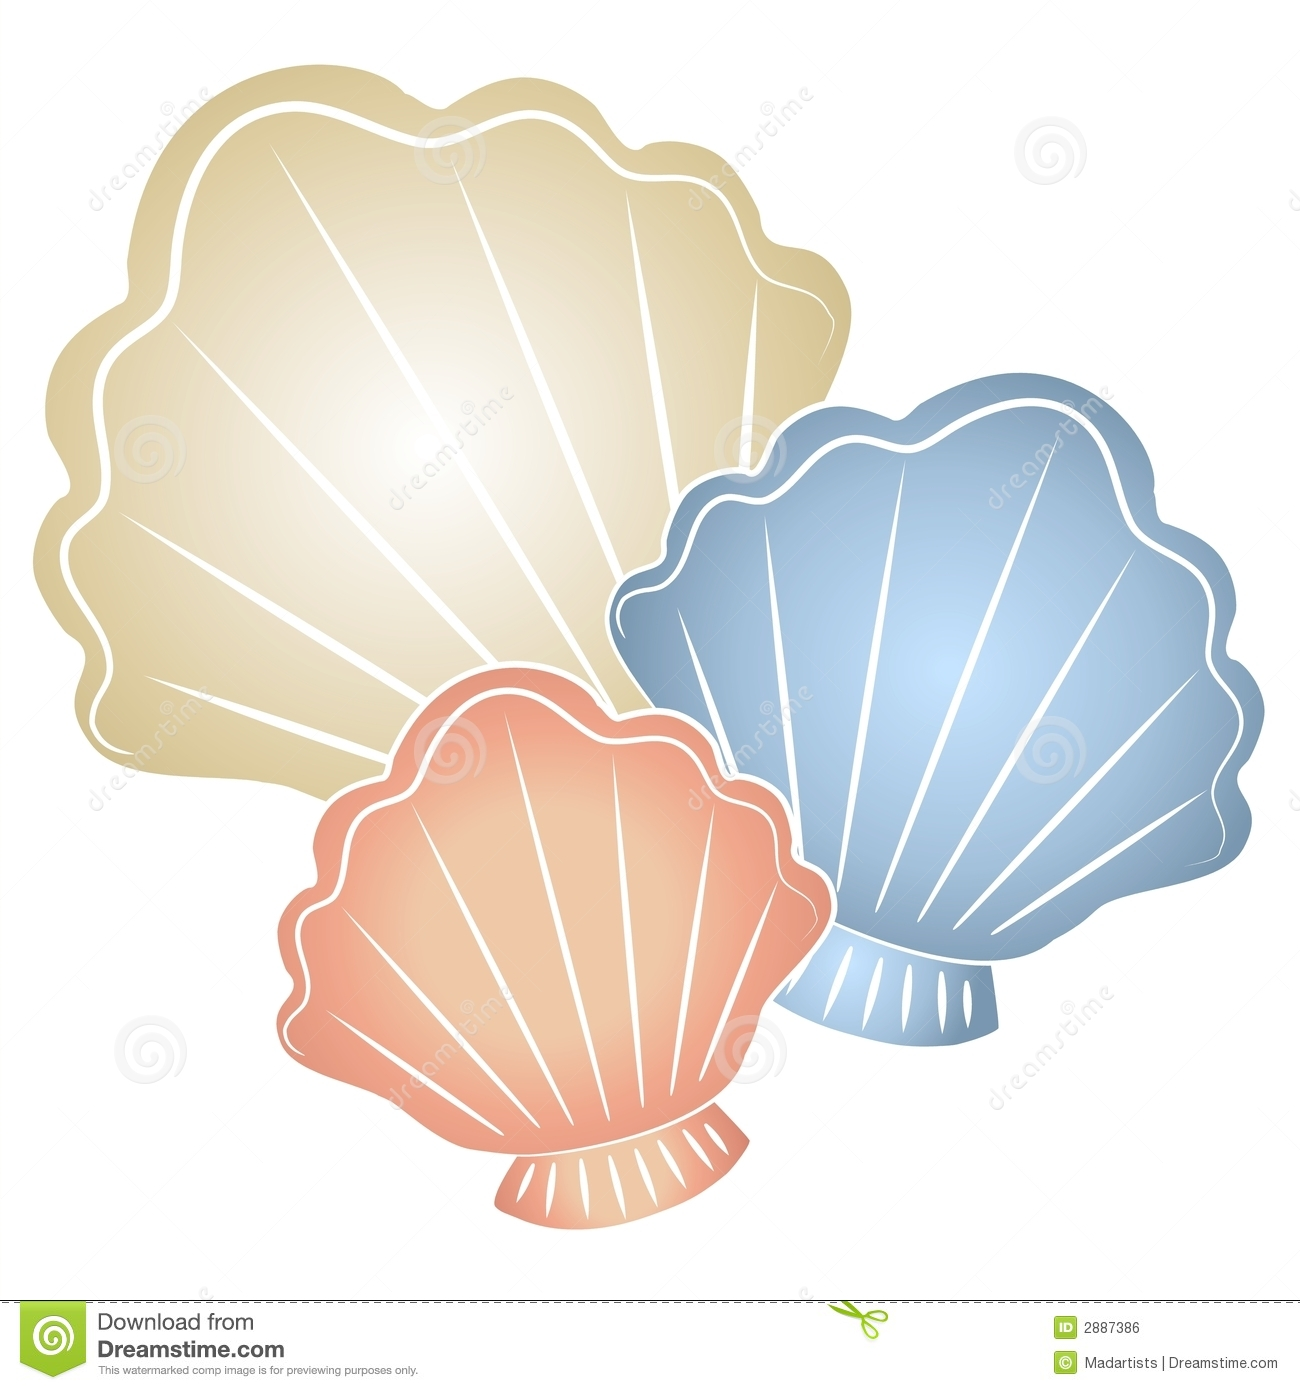 Sea shells clipart 7 » Clipart Station.